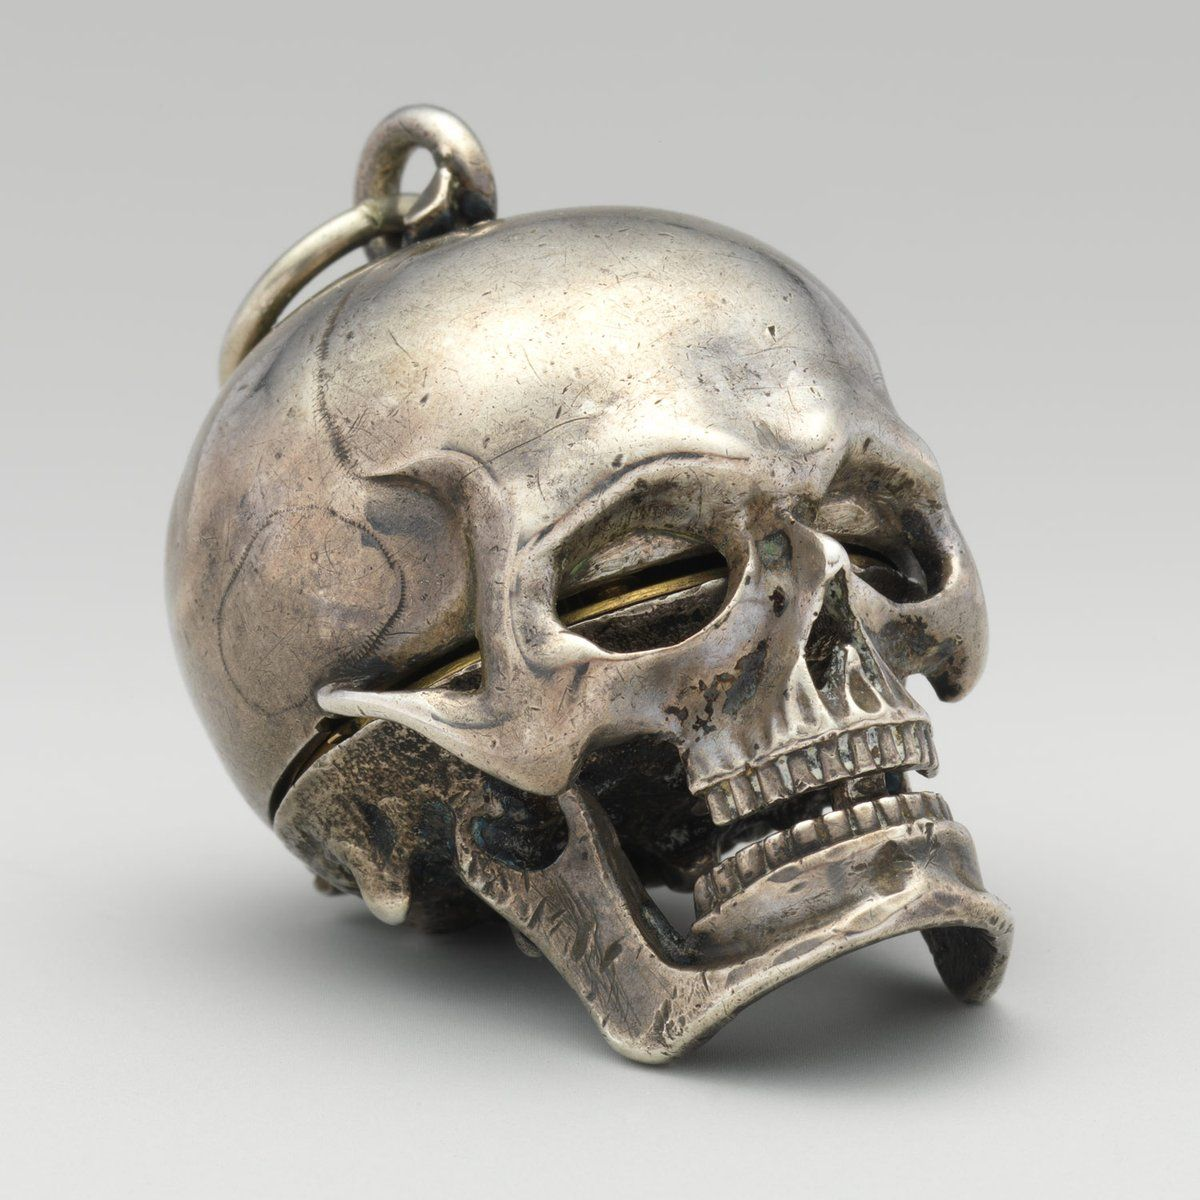 """Europe's Historyさんのツイート: """"Silver skull pocket-watch made by the Genevan watchmaker Isaac Penard c.1650 (On display @metmuseum) https://t.co/7sgFqxFiqB"""""""